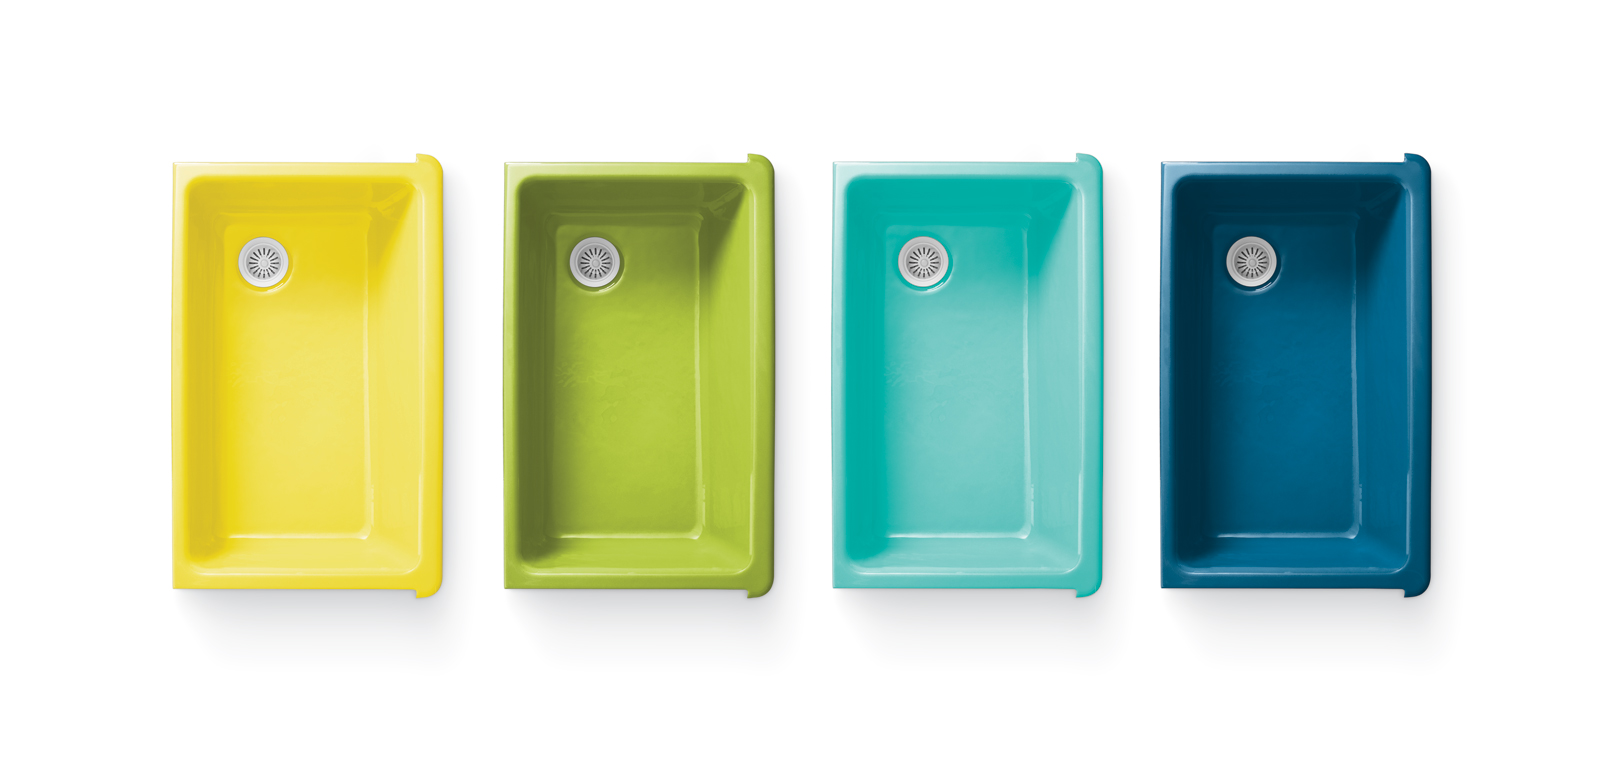 Colorful enameled cast-iron sinks by Jonathan Adler